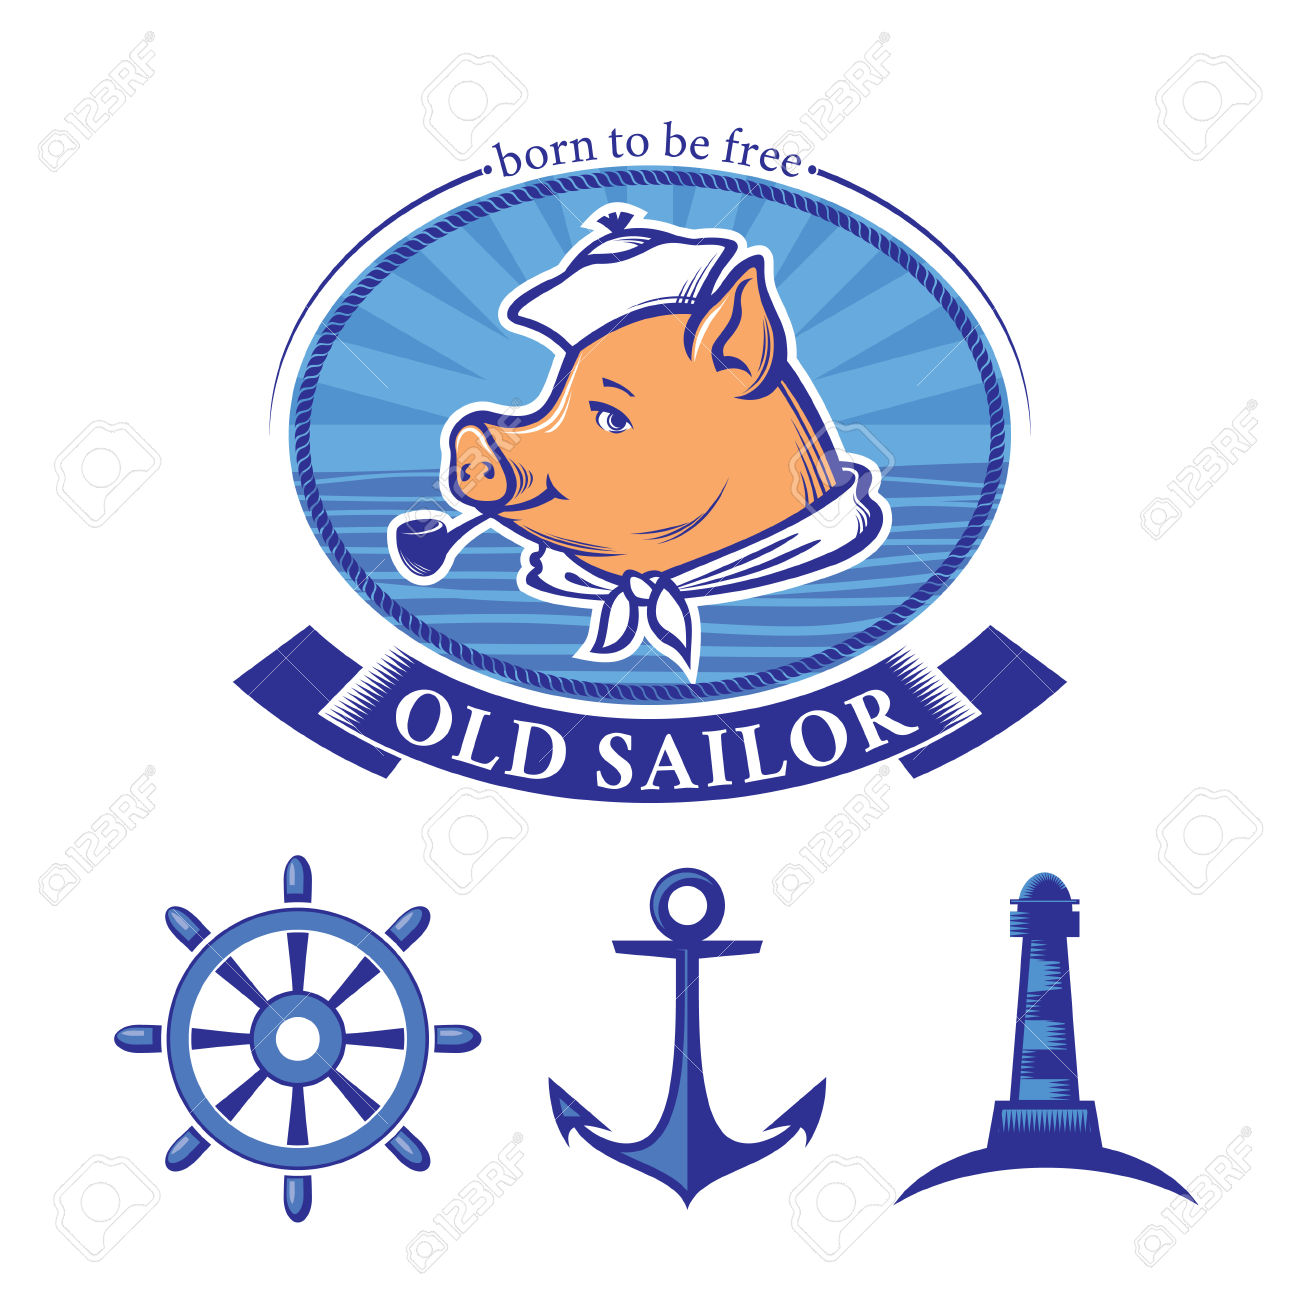 Sailor Logo Design And Set Of Vintage Nautical Icons, Piglet.